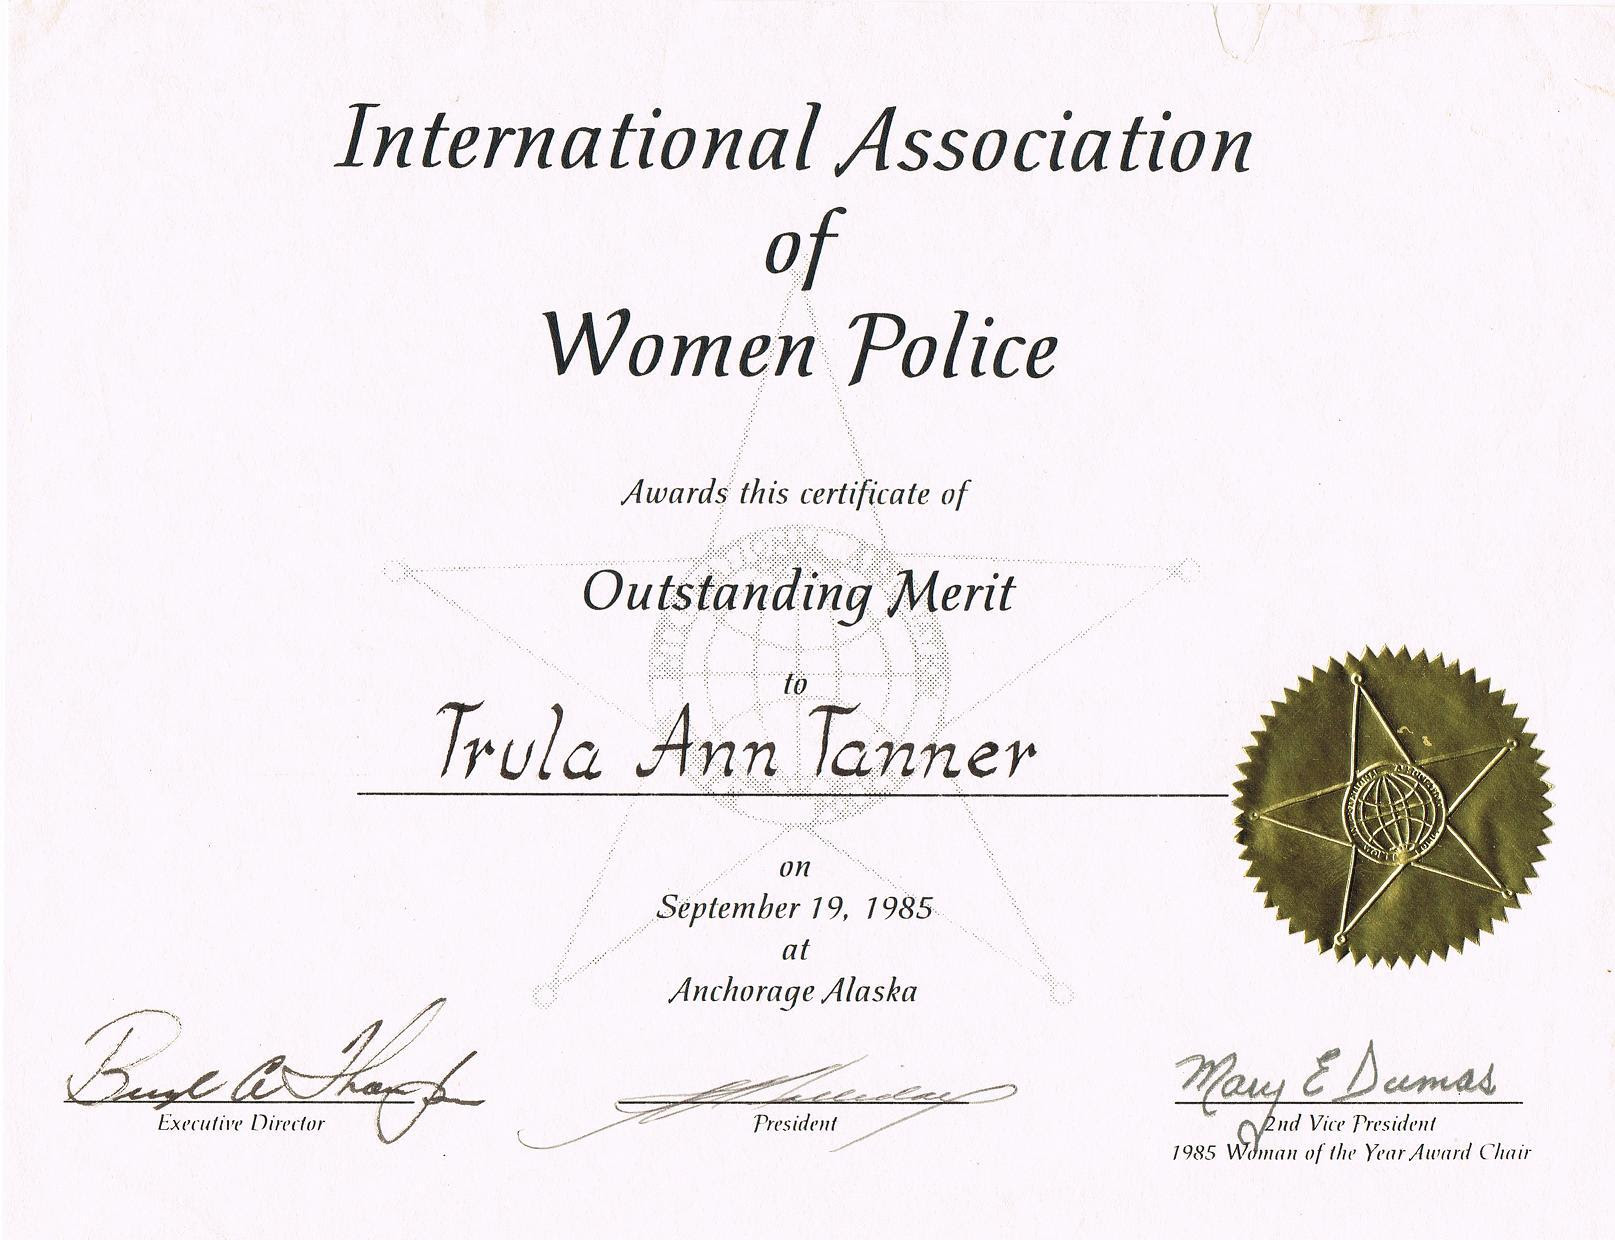 Trulas honor as a Police Officer as one of the top police women in America